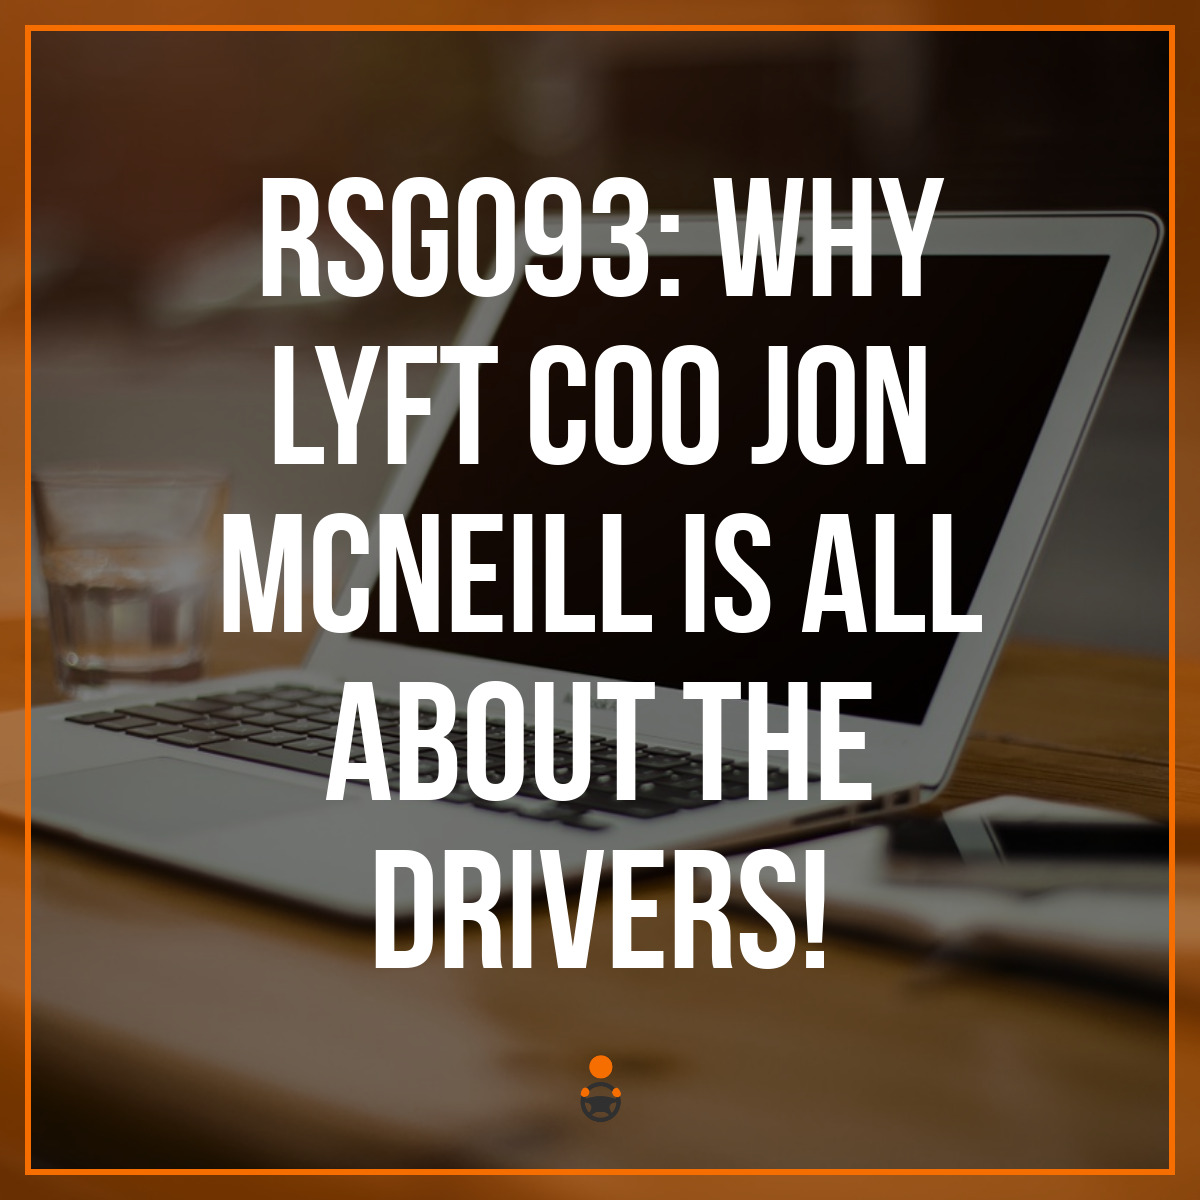 RSG093: Why Lyft COO Jon McNeill is All About The Drivers!